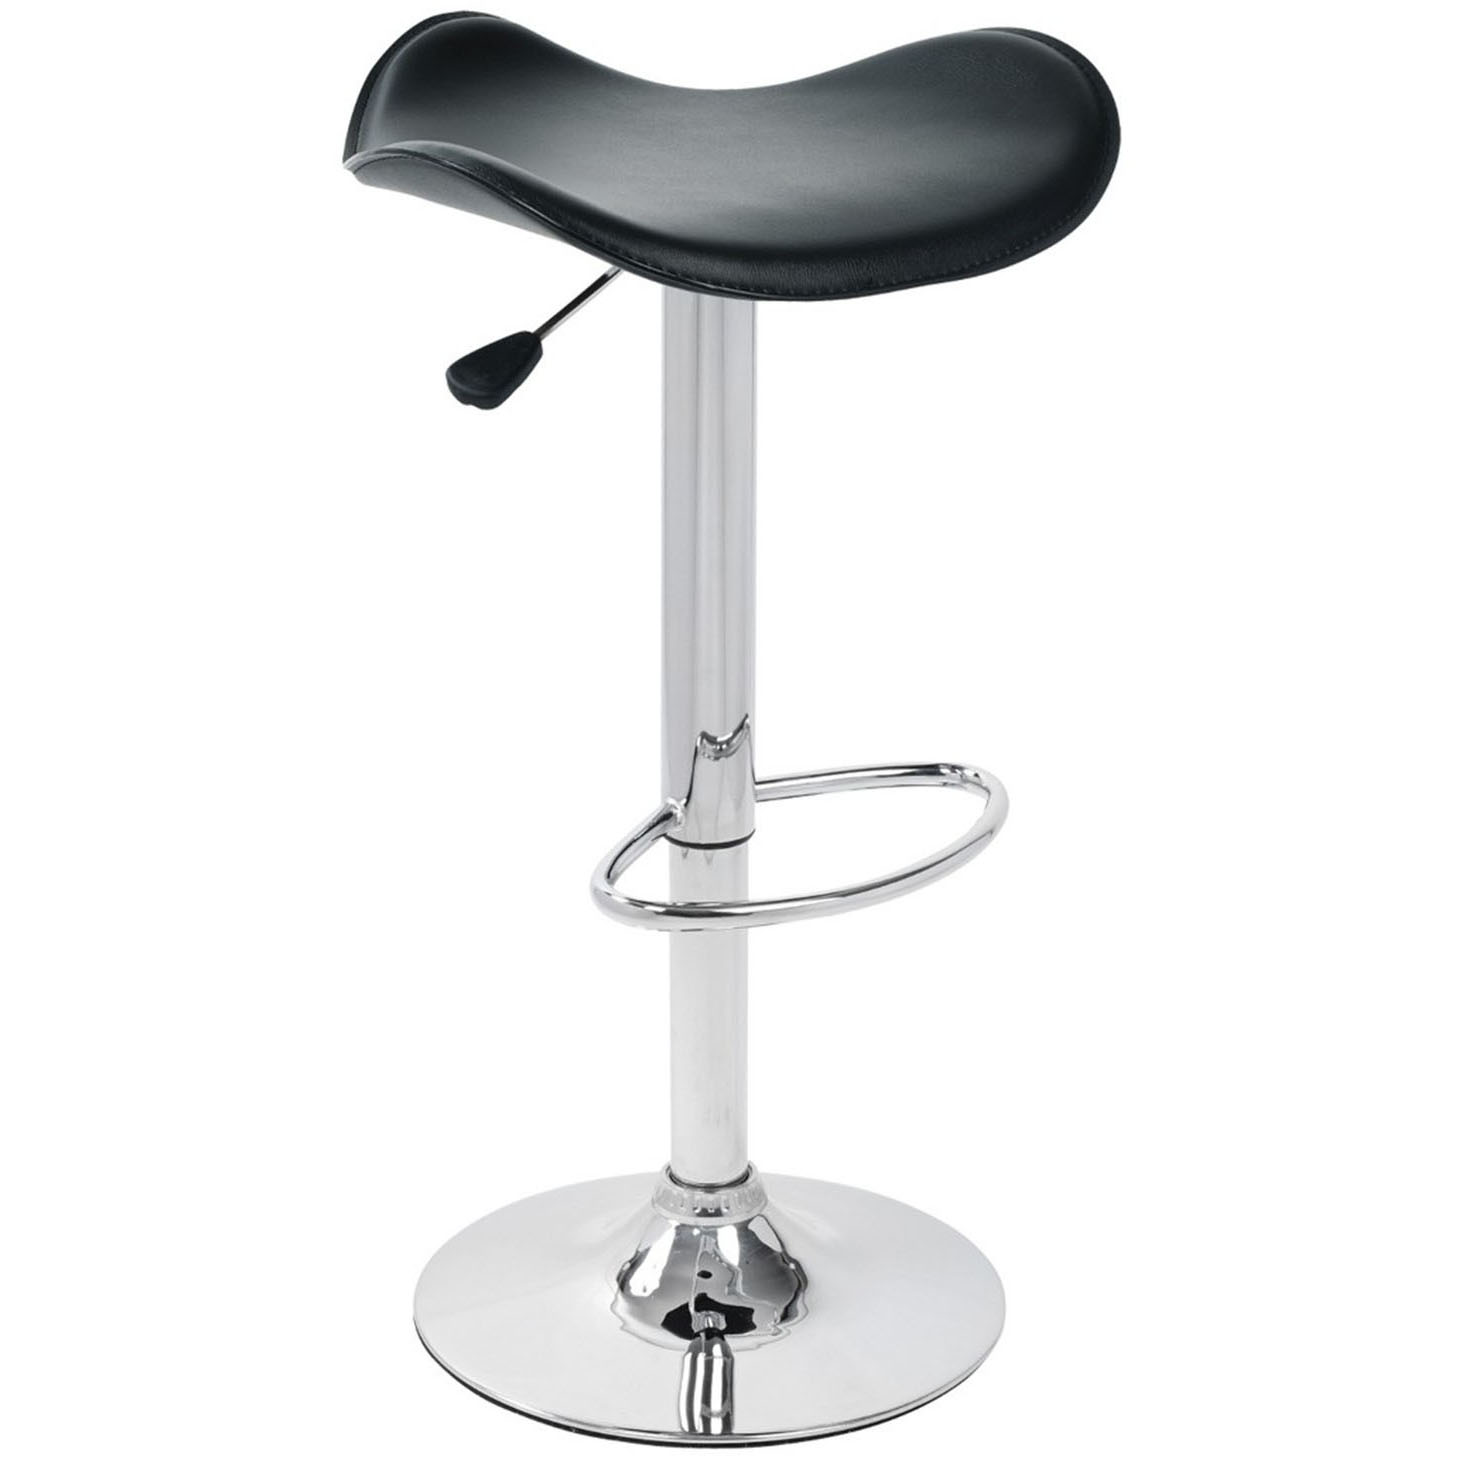 Venus Bar Stool - Black Product Image